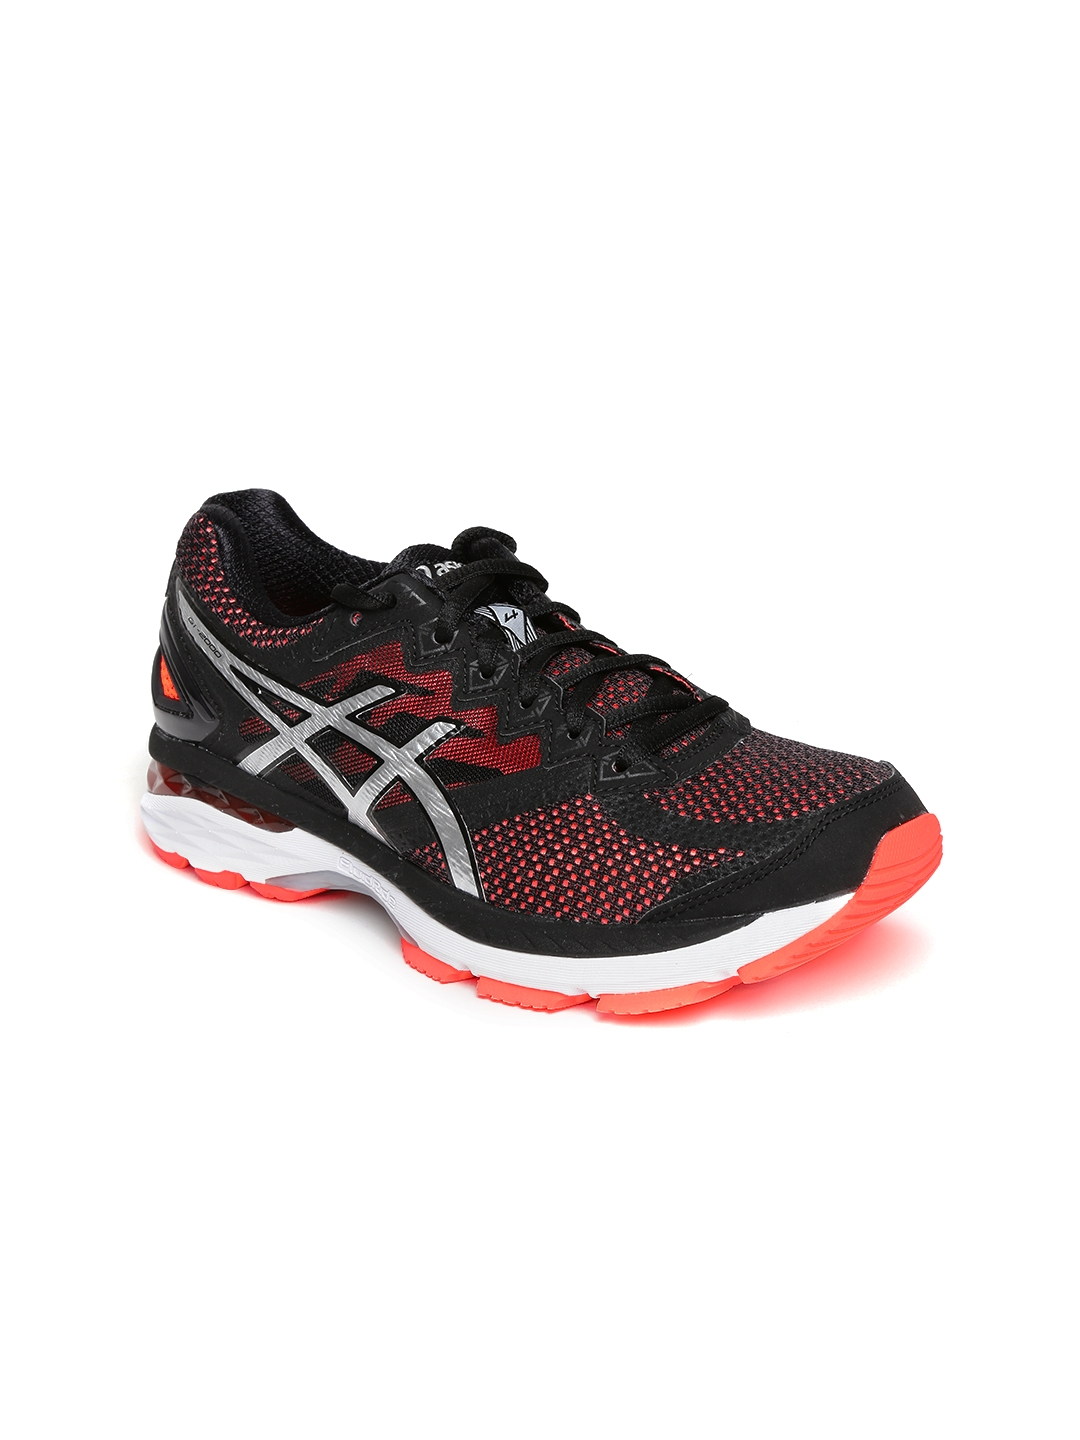 8c0741c0fa47 Buy ASICS Women Black GT 2000 4 Running Shoes - Sports Shoes for ...